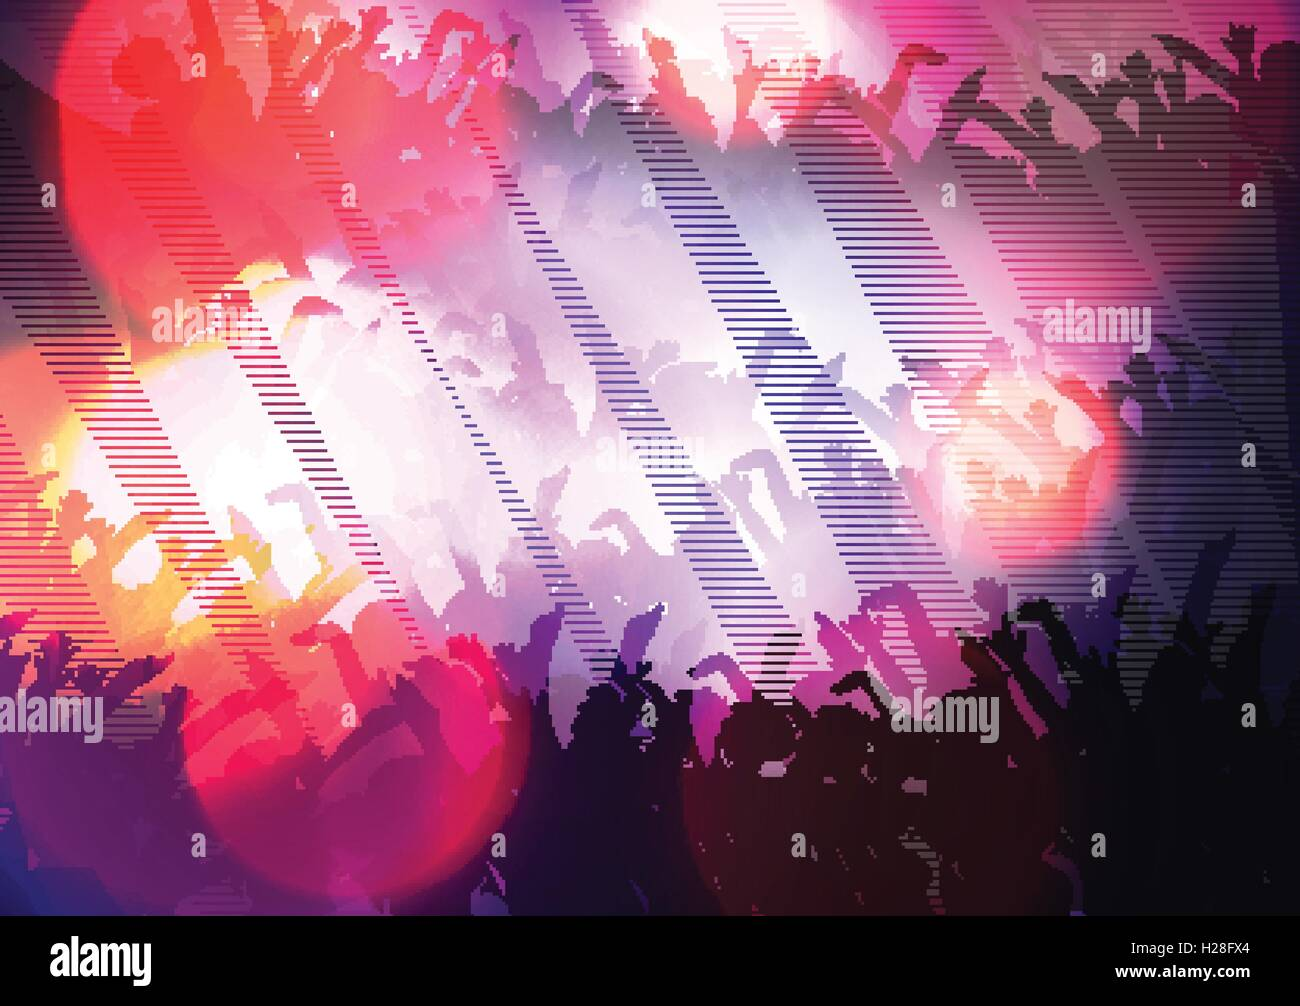 abstract digital glitch party poster background stock vector art